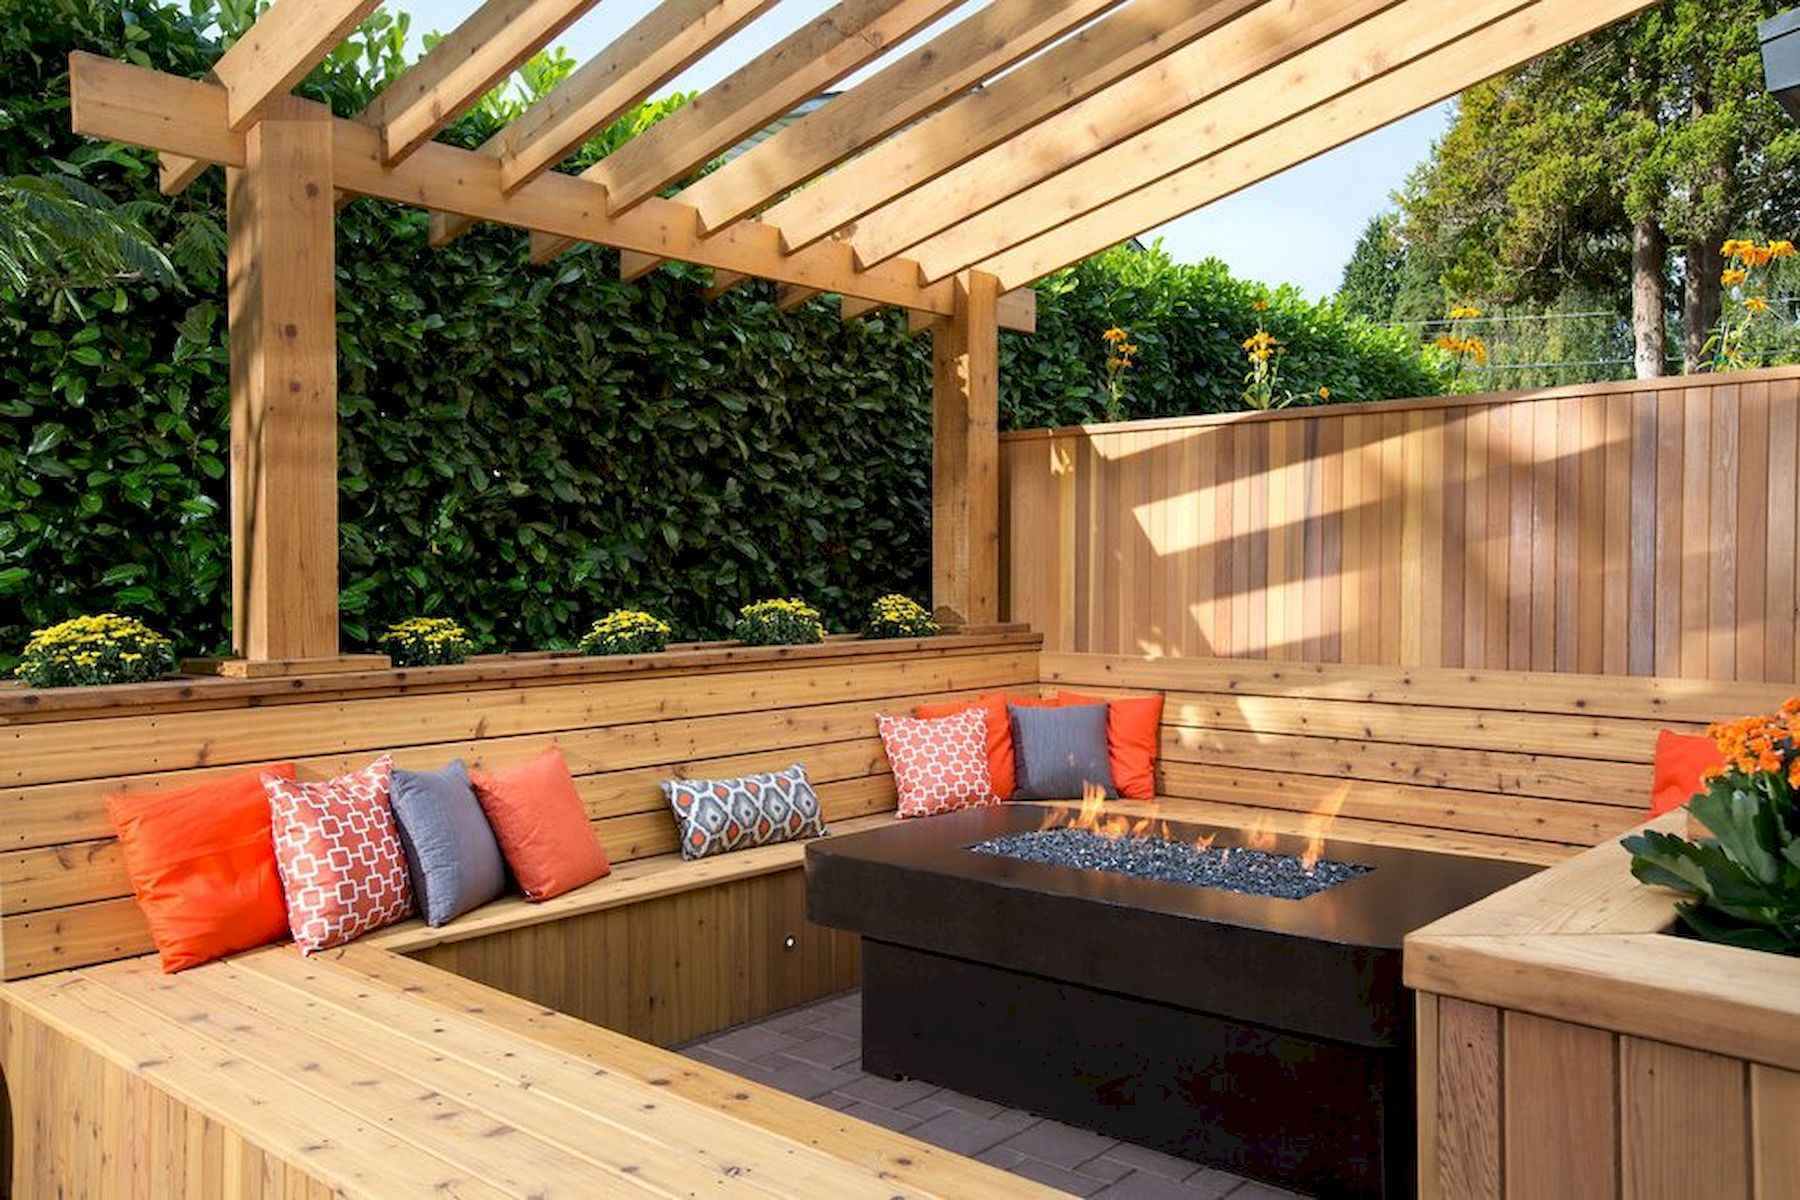 80 DIY Summery Backyard Projects Ideas Make Your Summer Awesome (53)